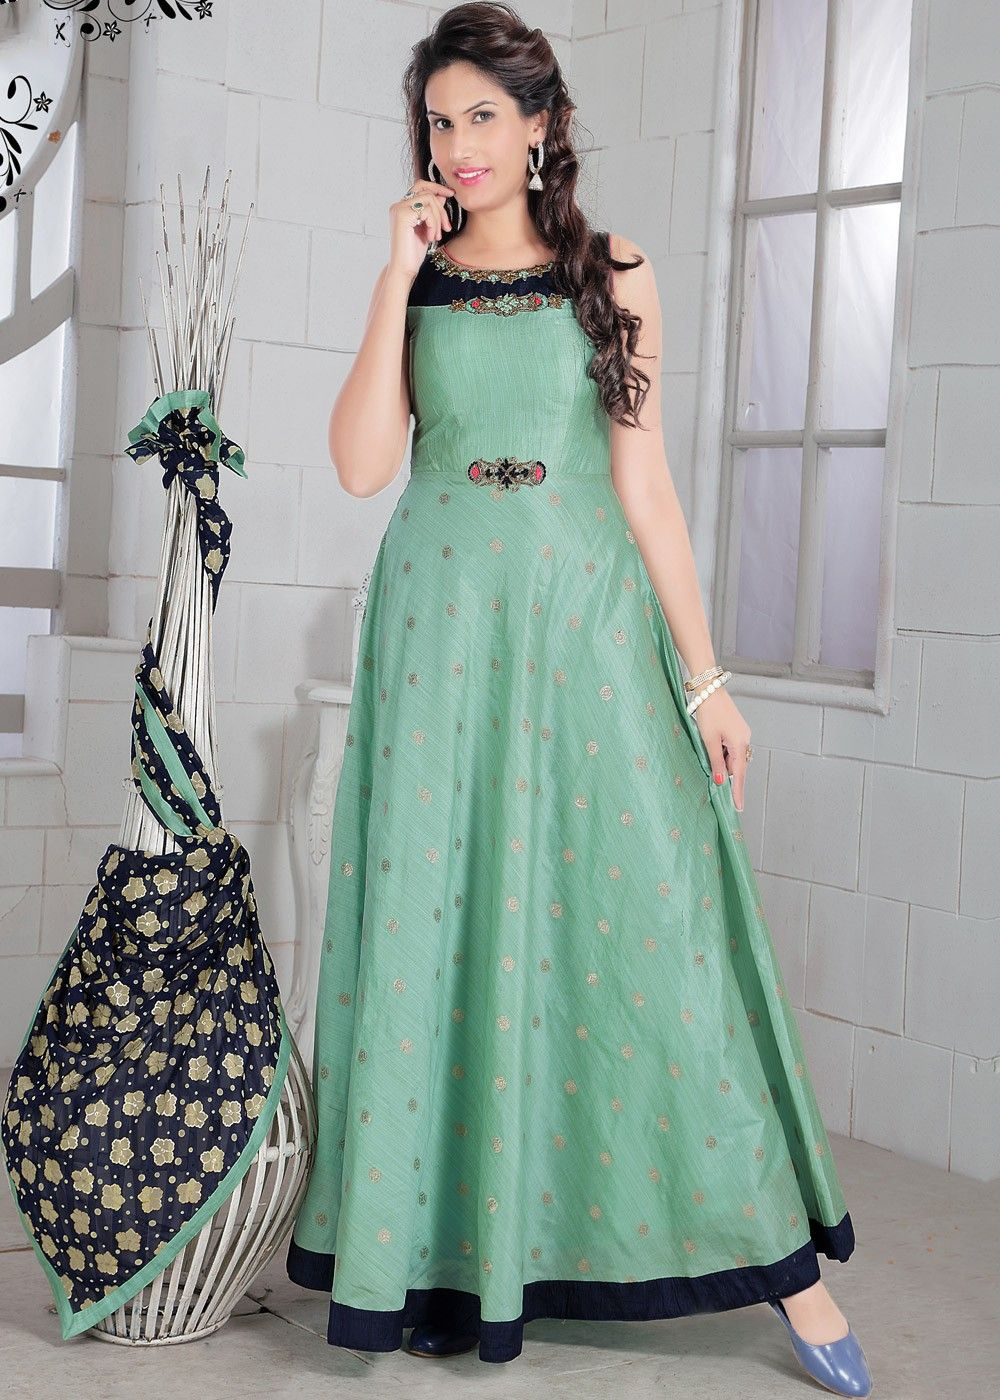 9e9928a0329542 Readymade mint  green sleeveless flared  kameez in art  silk embellished  with  resham  embroidery and  zari work.